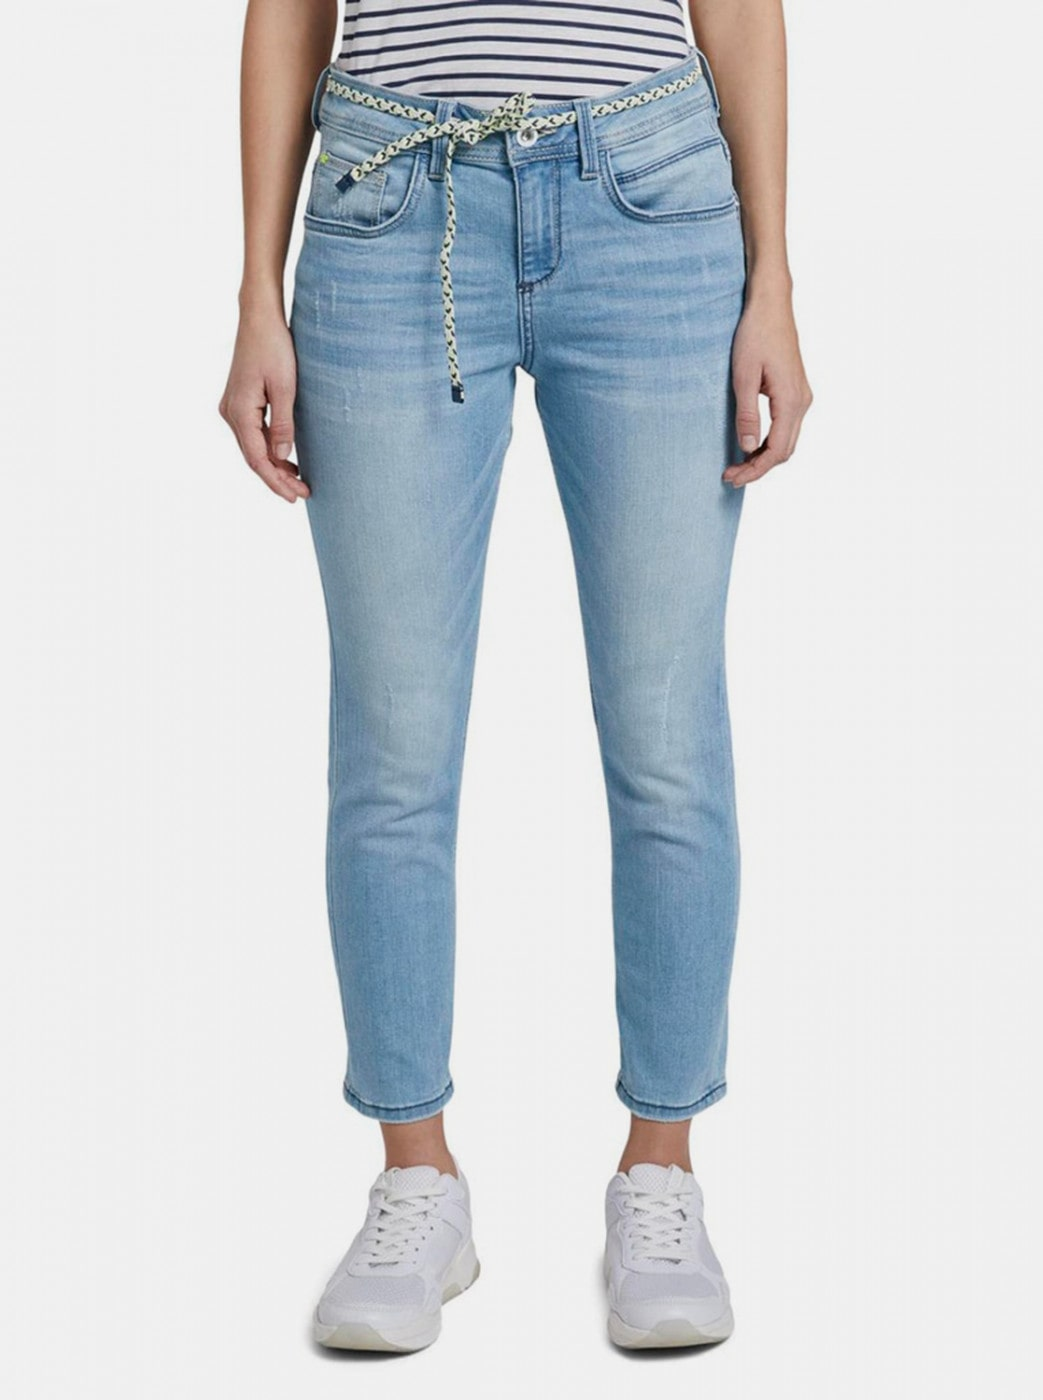 Blue Women's Abbreviated Relaxed Fit Jeans Tom Tailor